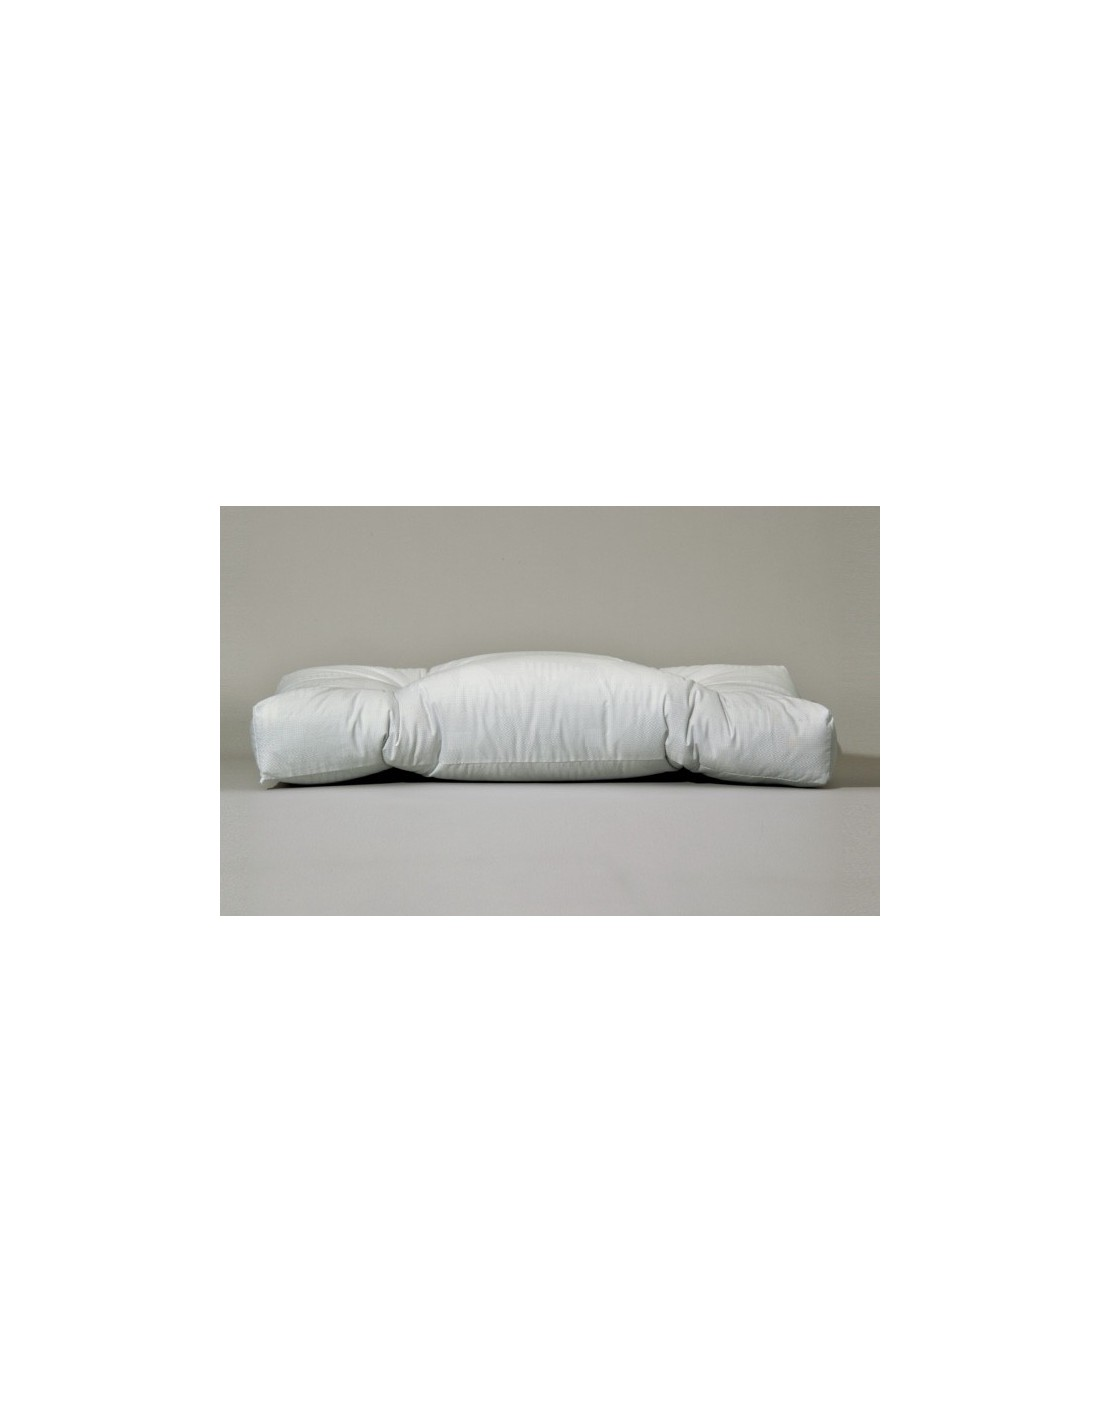 product smartwithyou goodnite snore picture blog pillow review openning anti